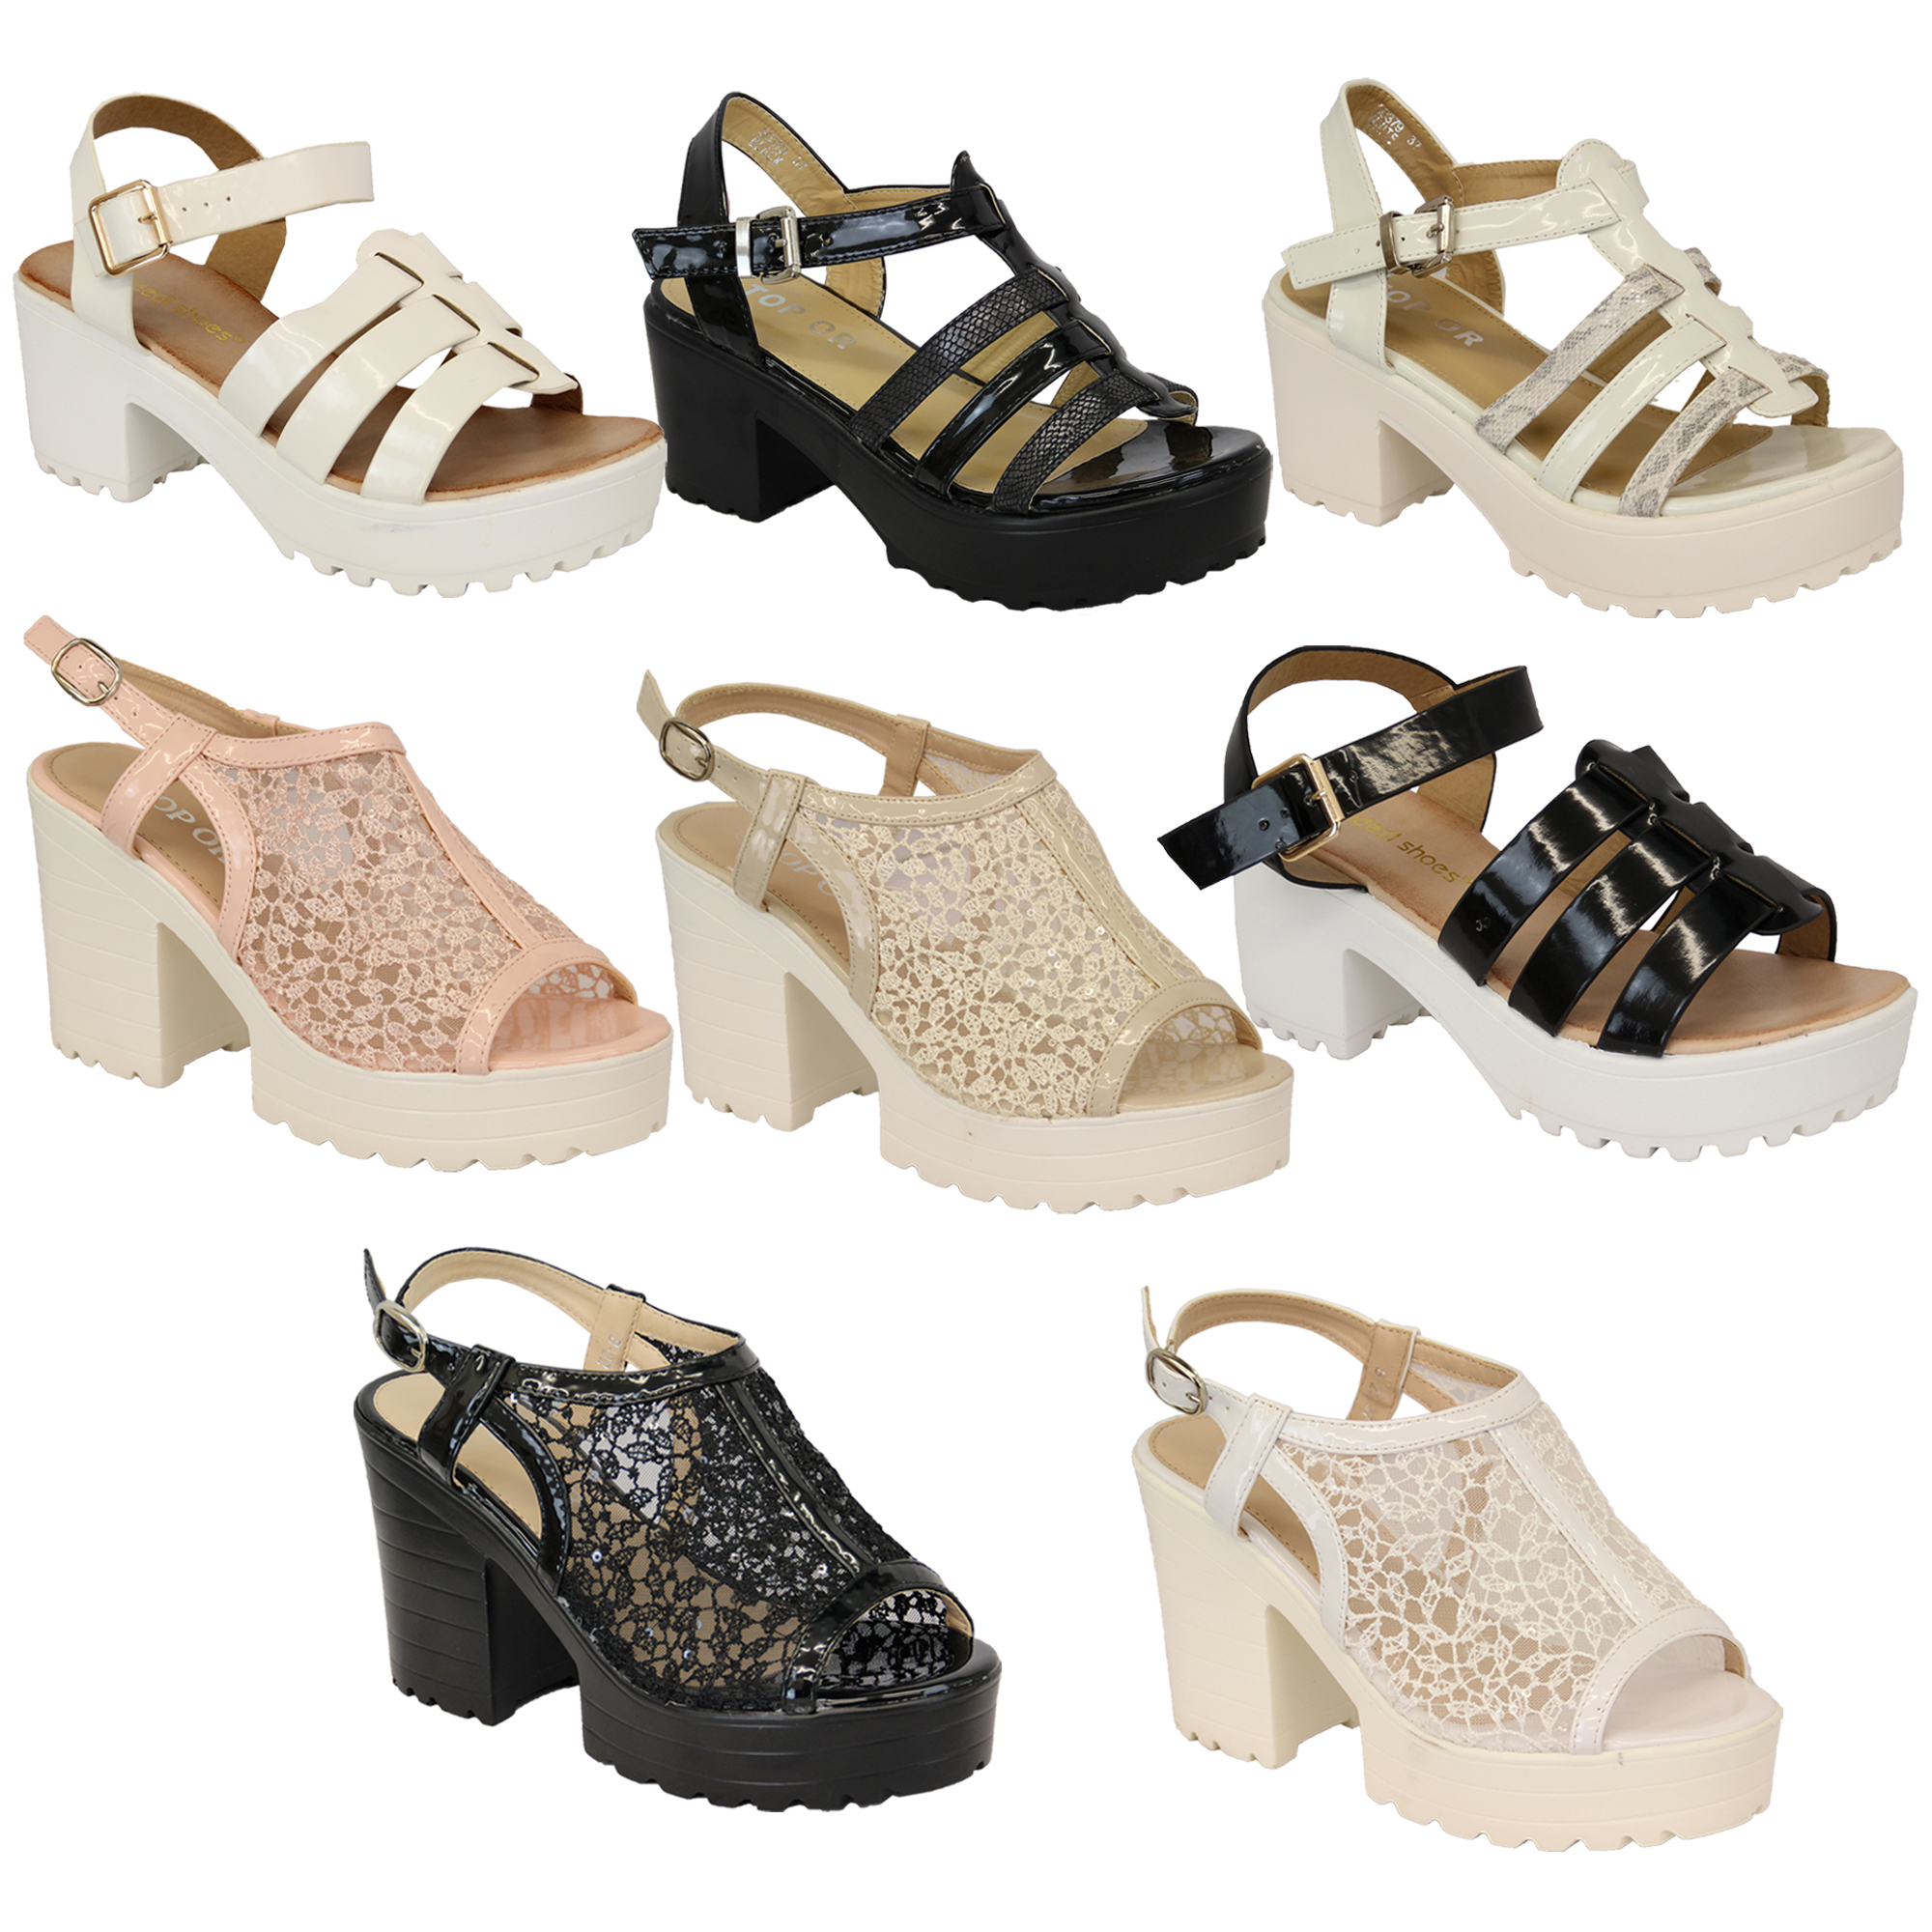 Ladies-Sandals-Womens-Cleated-Chunky-Block-Heel-Mesh-Platforms-Strap-Patent-New thumbnail 5